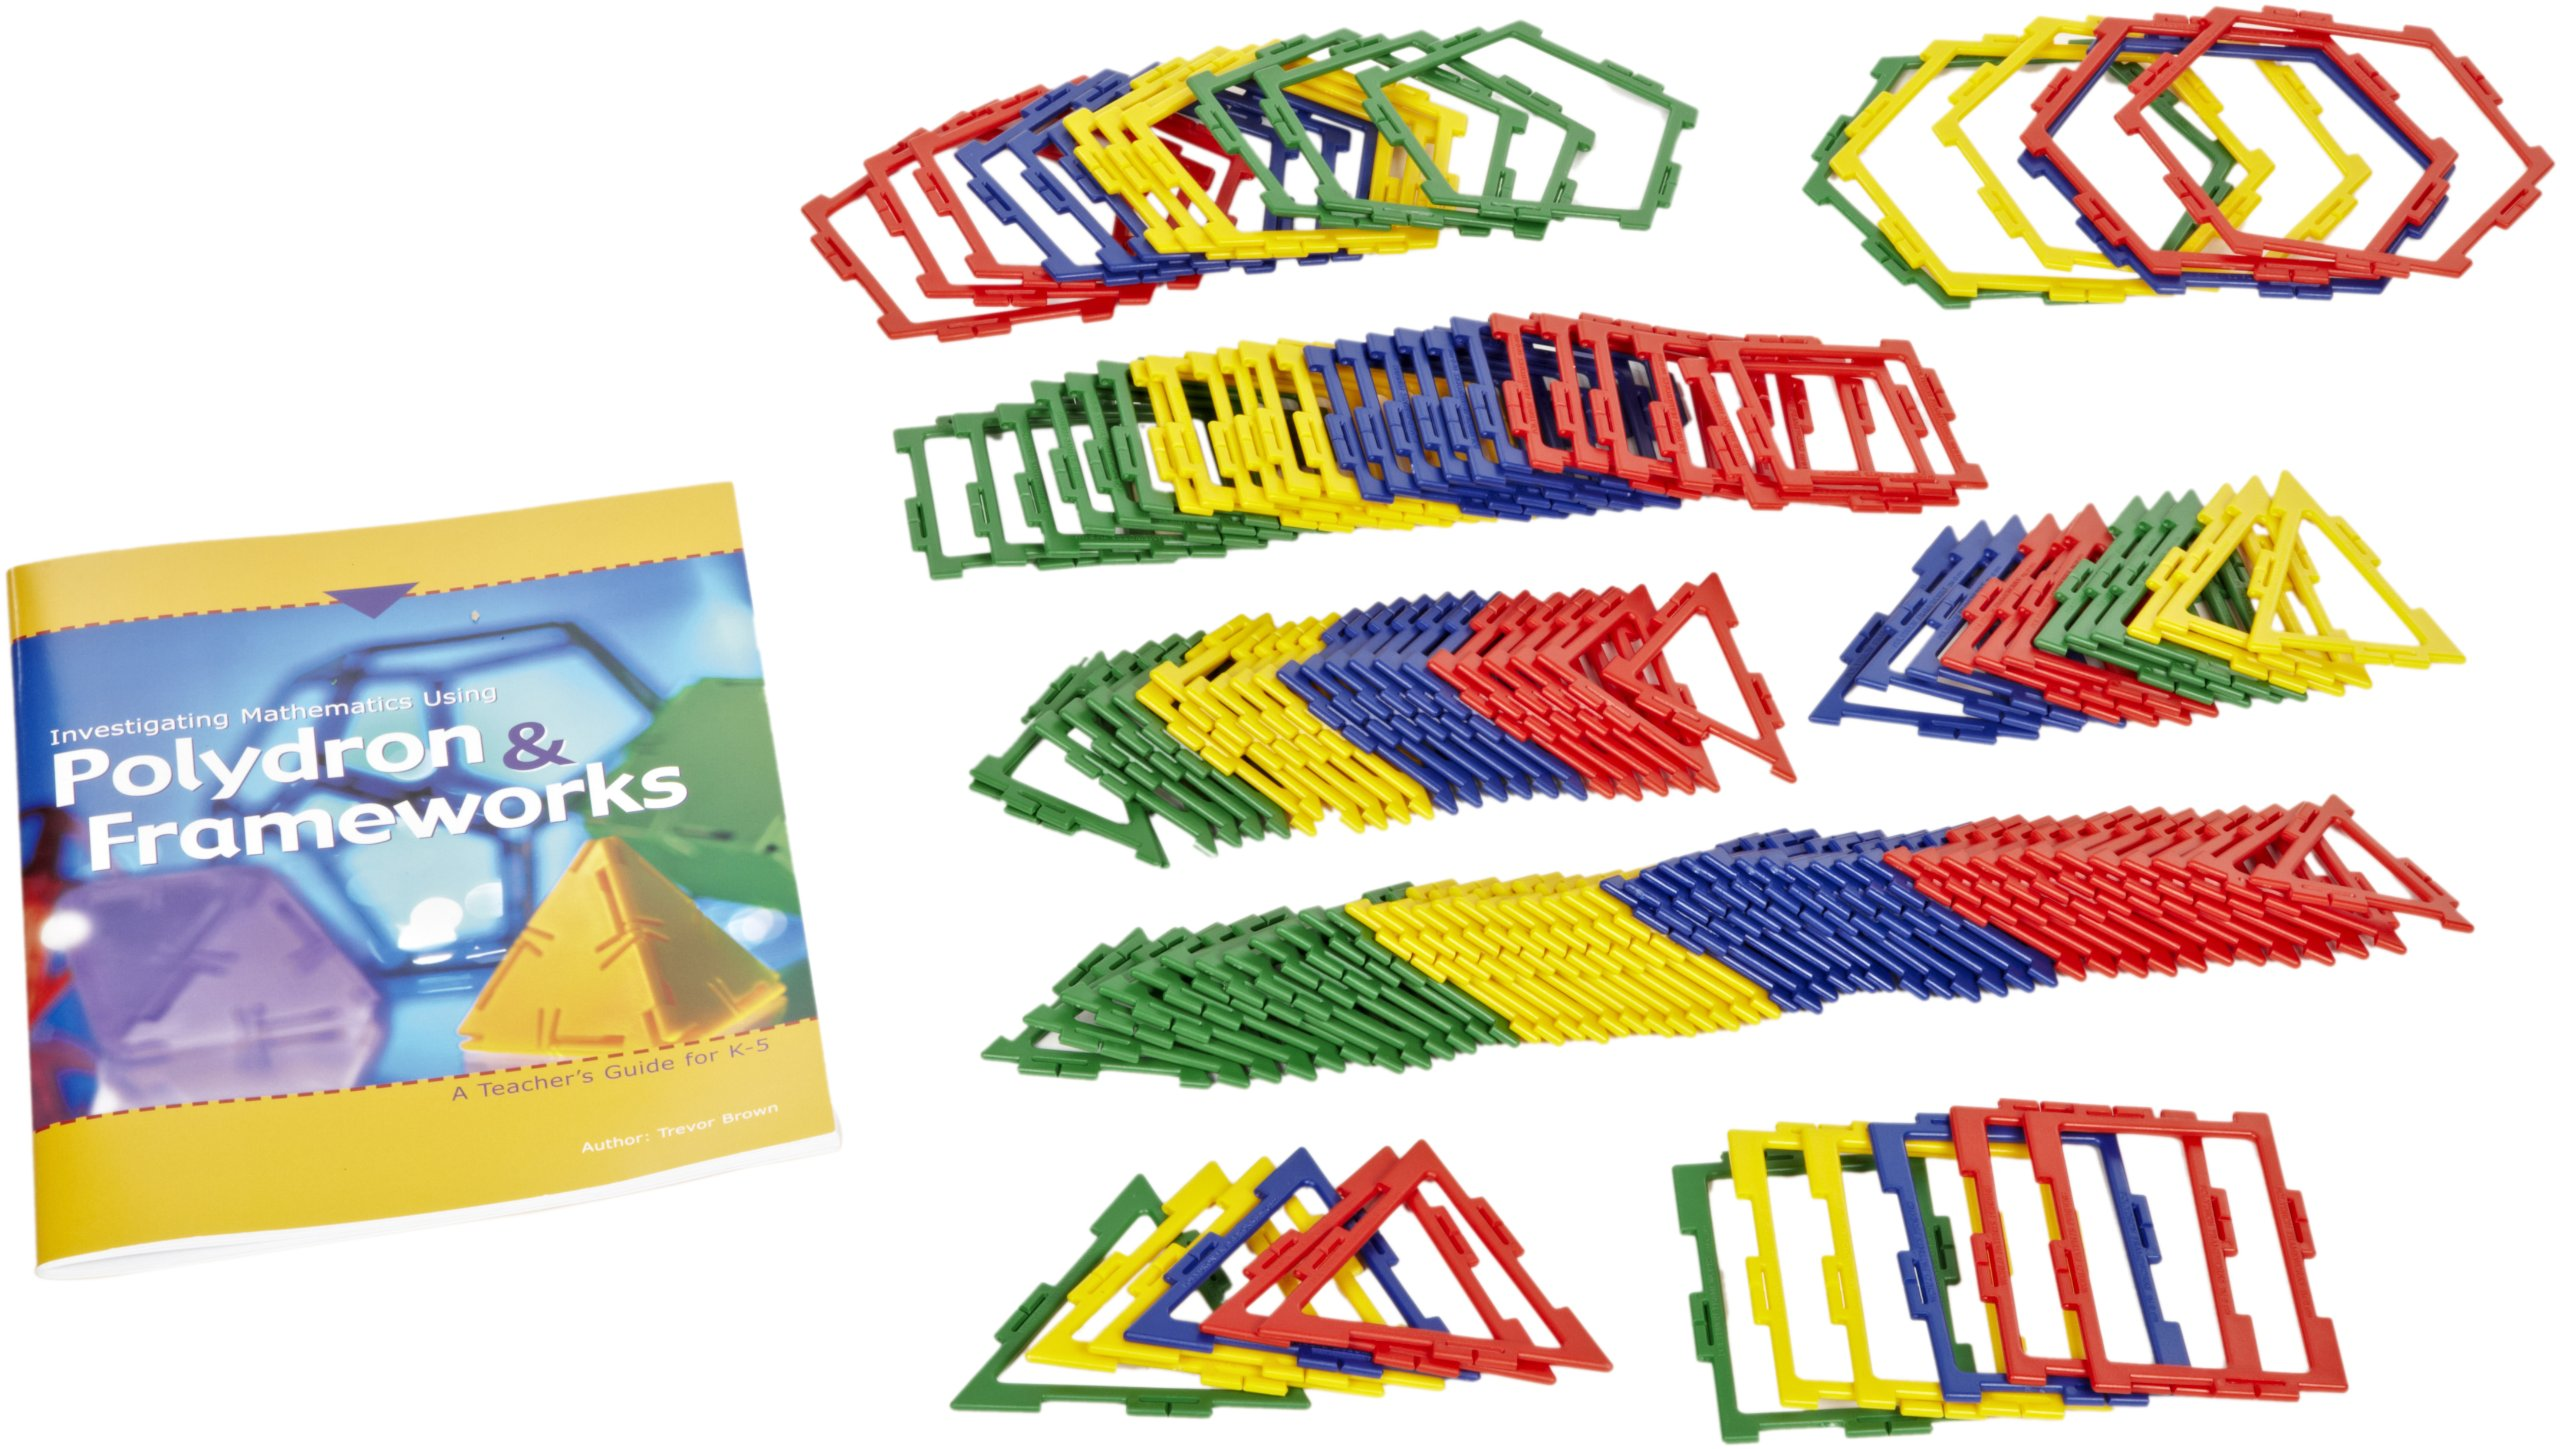 Polydron Frameworks Classroom Set, 690 Pieces by Polydron